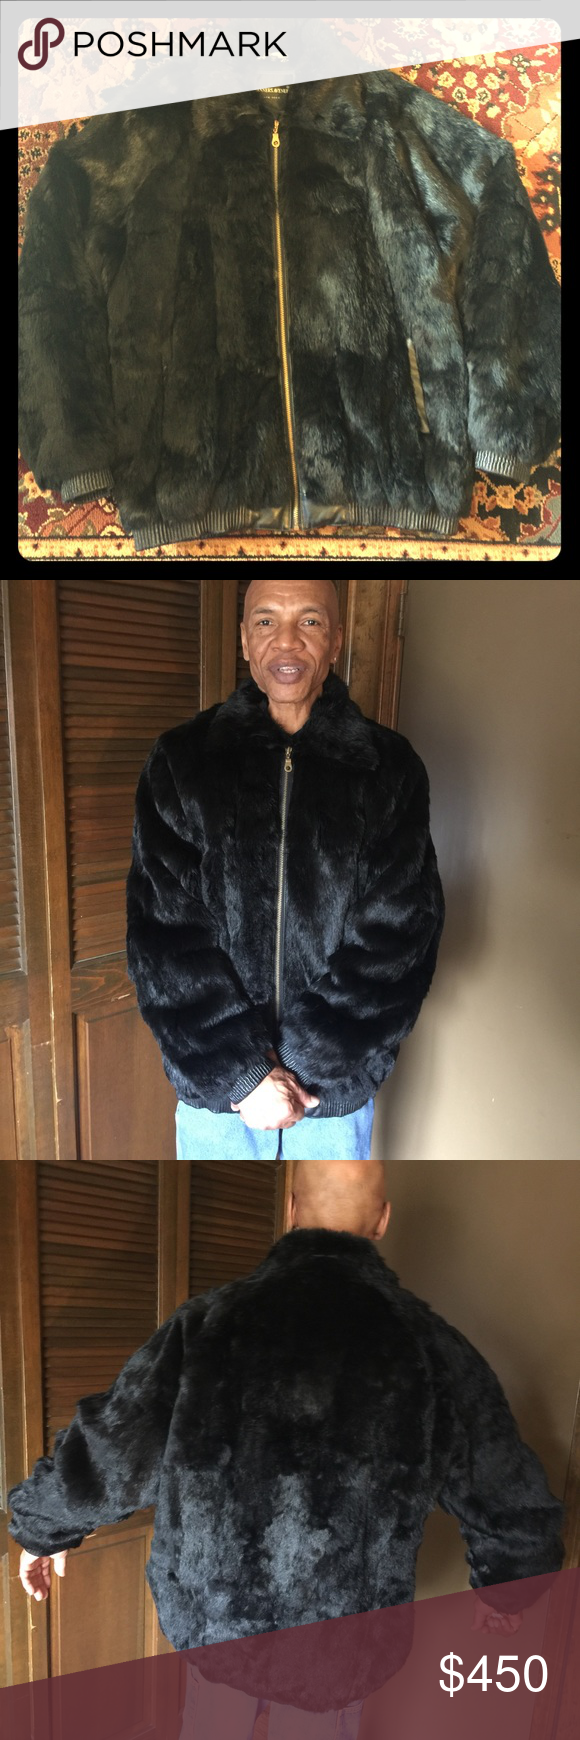 Genuine Fur, With Leather Trim Front Zip Jacket Fur jacket with leather trim on front pockets, sleeves and ribbed bottom. Tanner Leather Jackets & Coats Bomber & Varsity